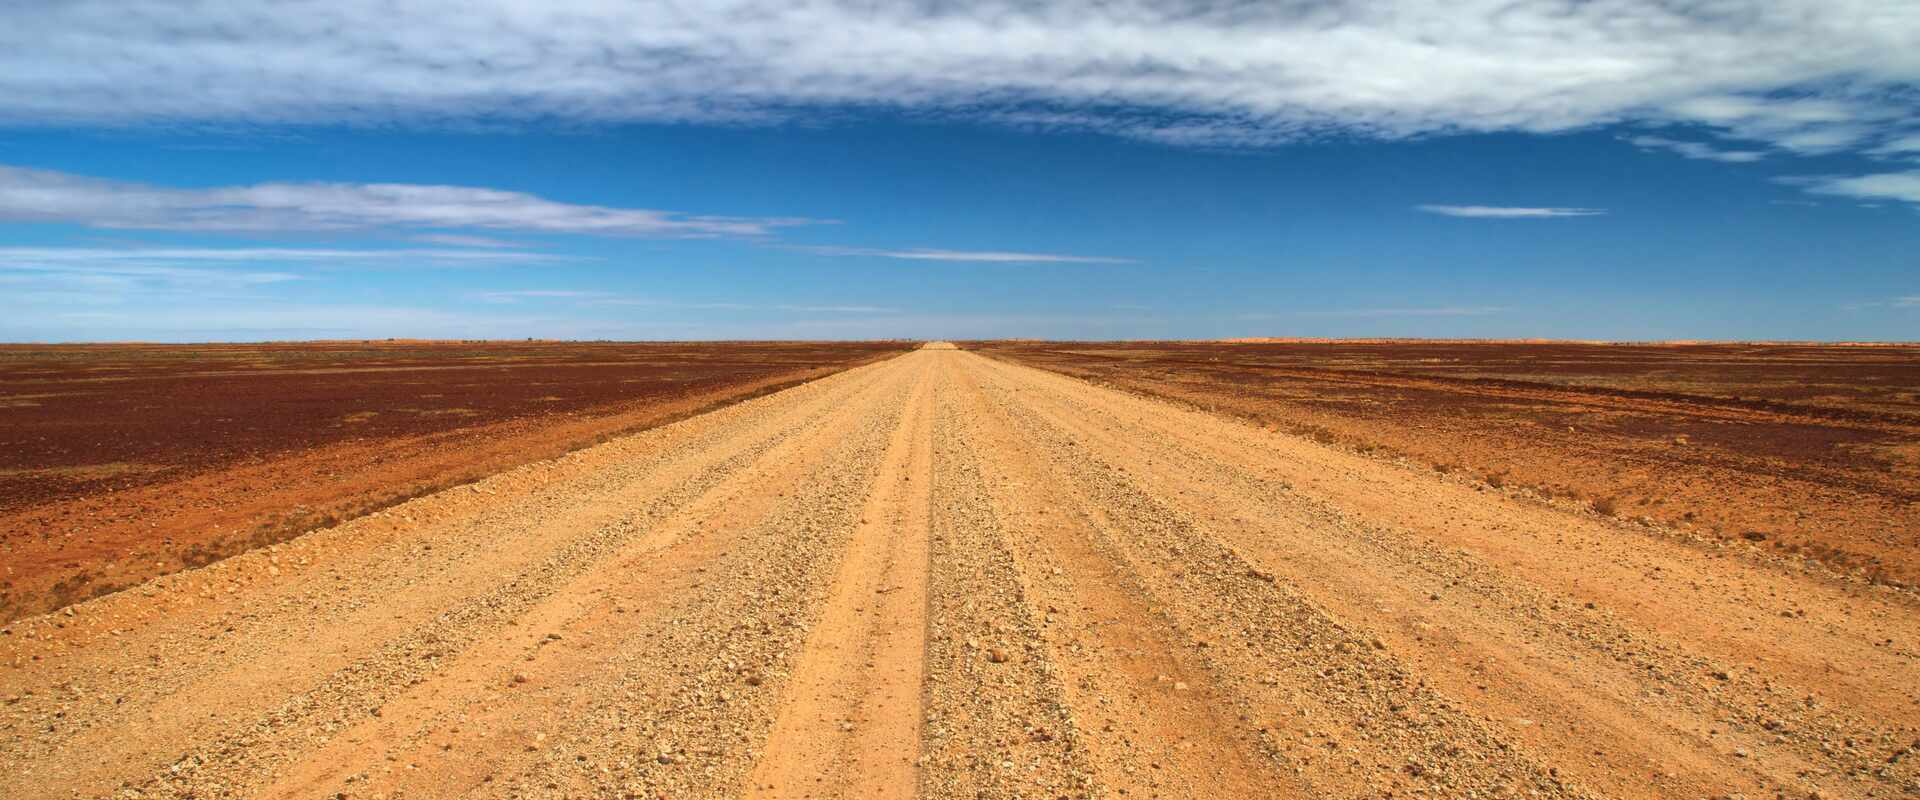 View of the Birdsville track into the distance, from ground level